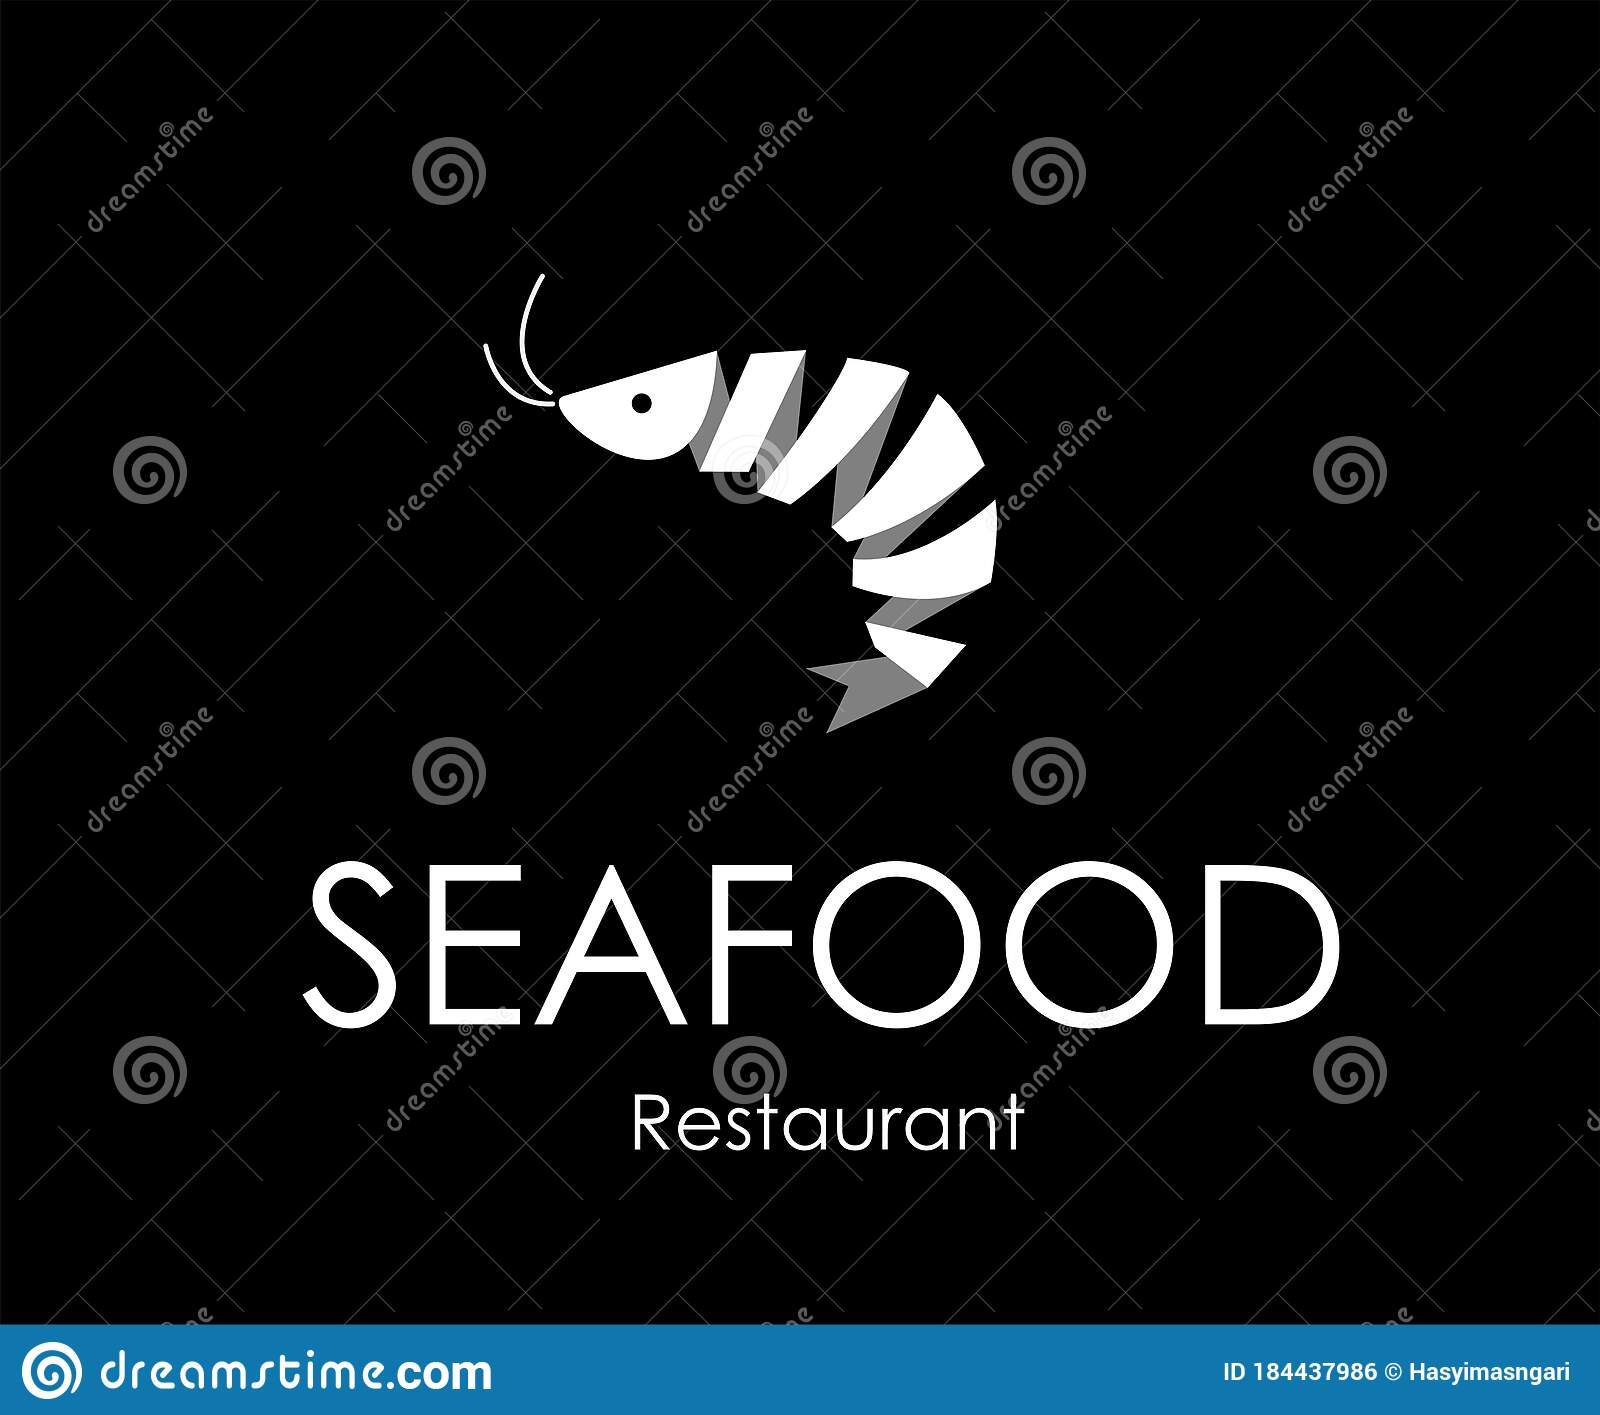 Seafood Restaurant Logo Design Concept With White Shrimp Ribbon Stock Vector Illustration Of Lobster Concept 184437986